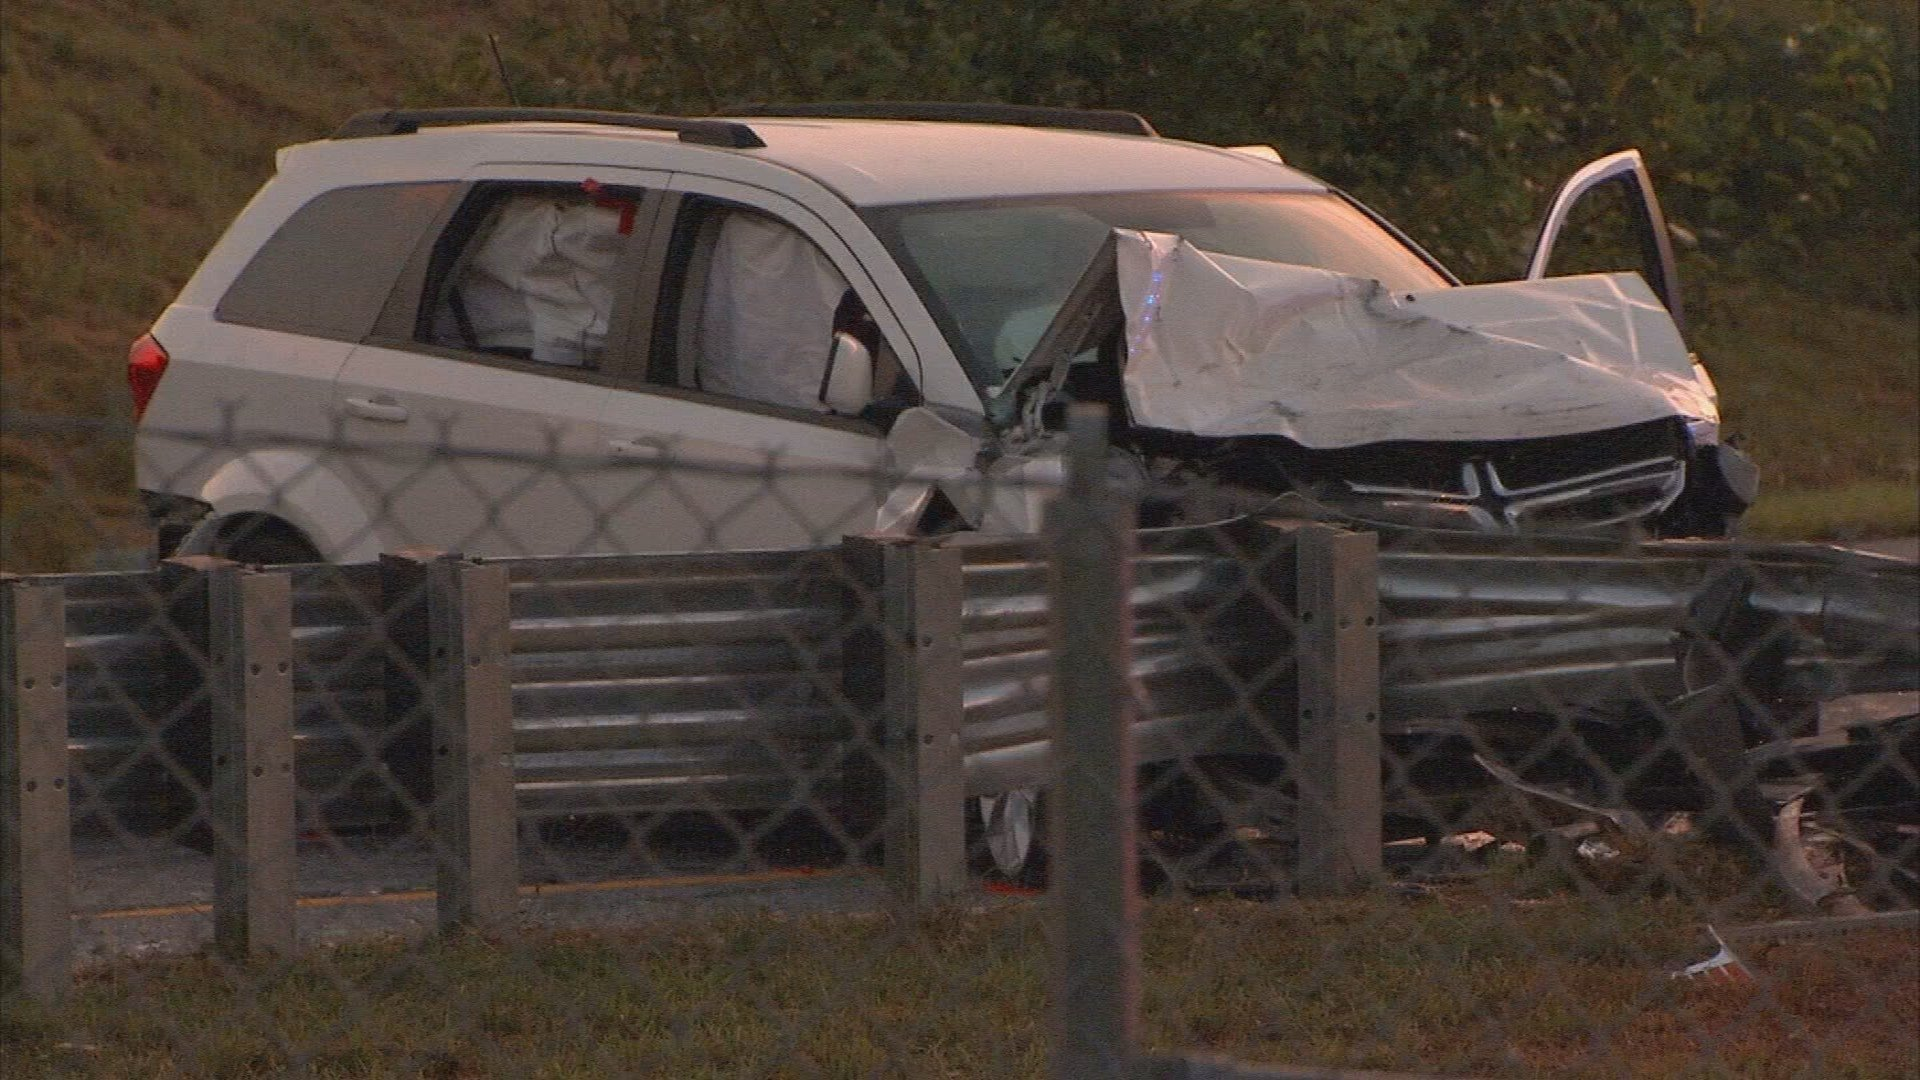 The man died in police custody after crashing this van (WGCL)